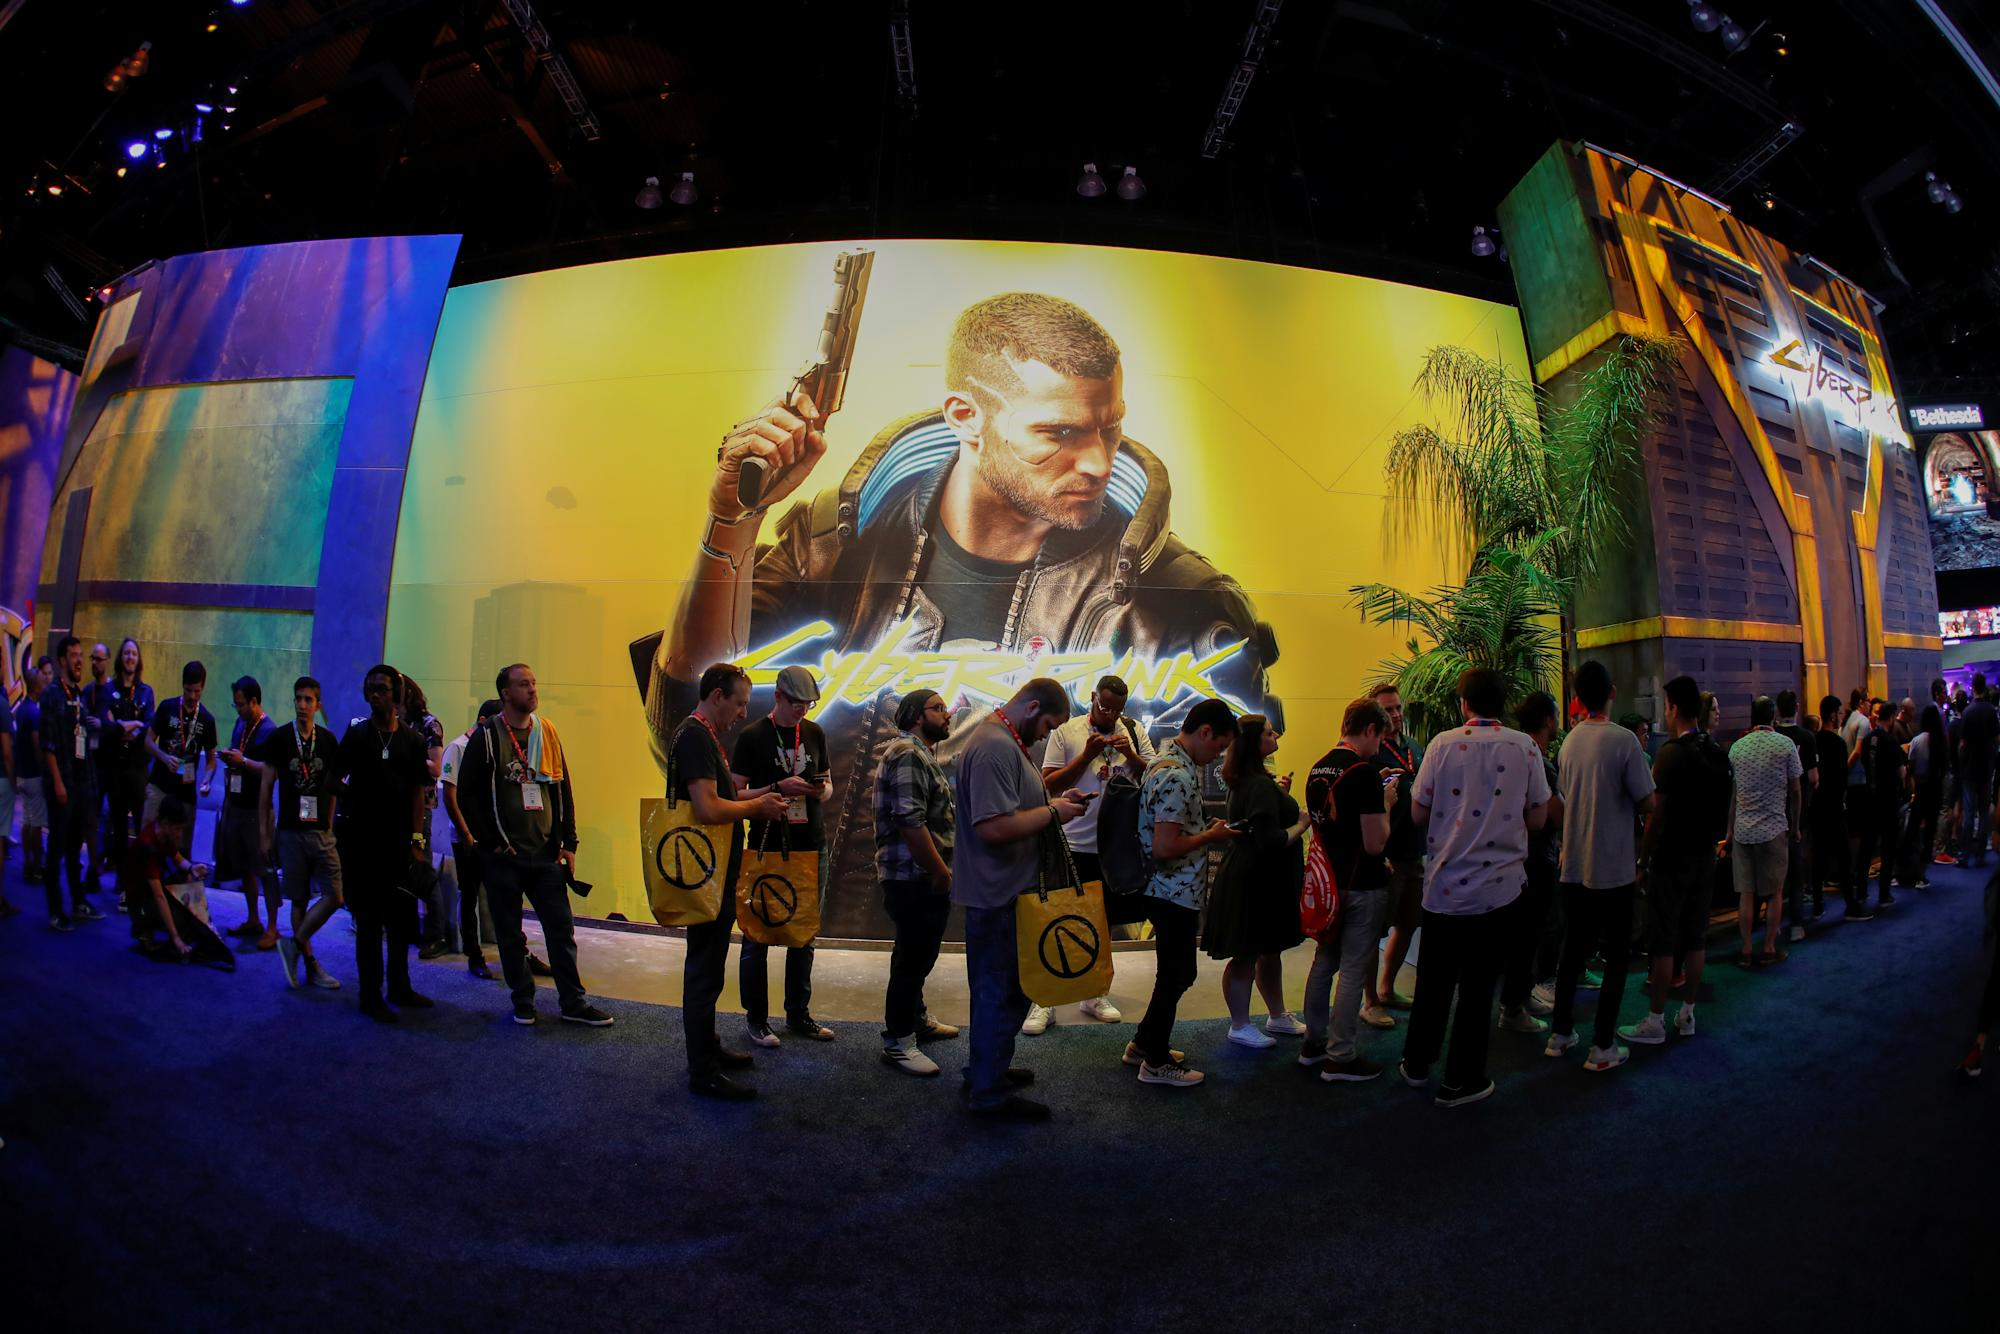 Sony is pulling the PS4 version of 'Cyberpunk 2077' and offering refunds – Yahoo Finance Australia